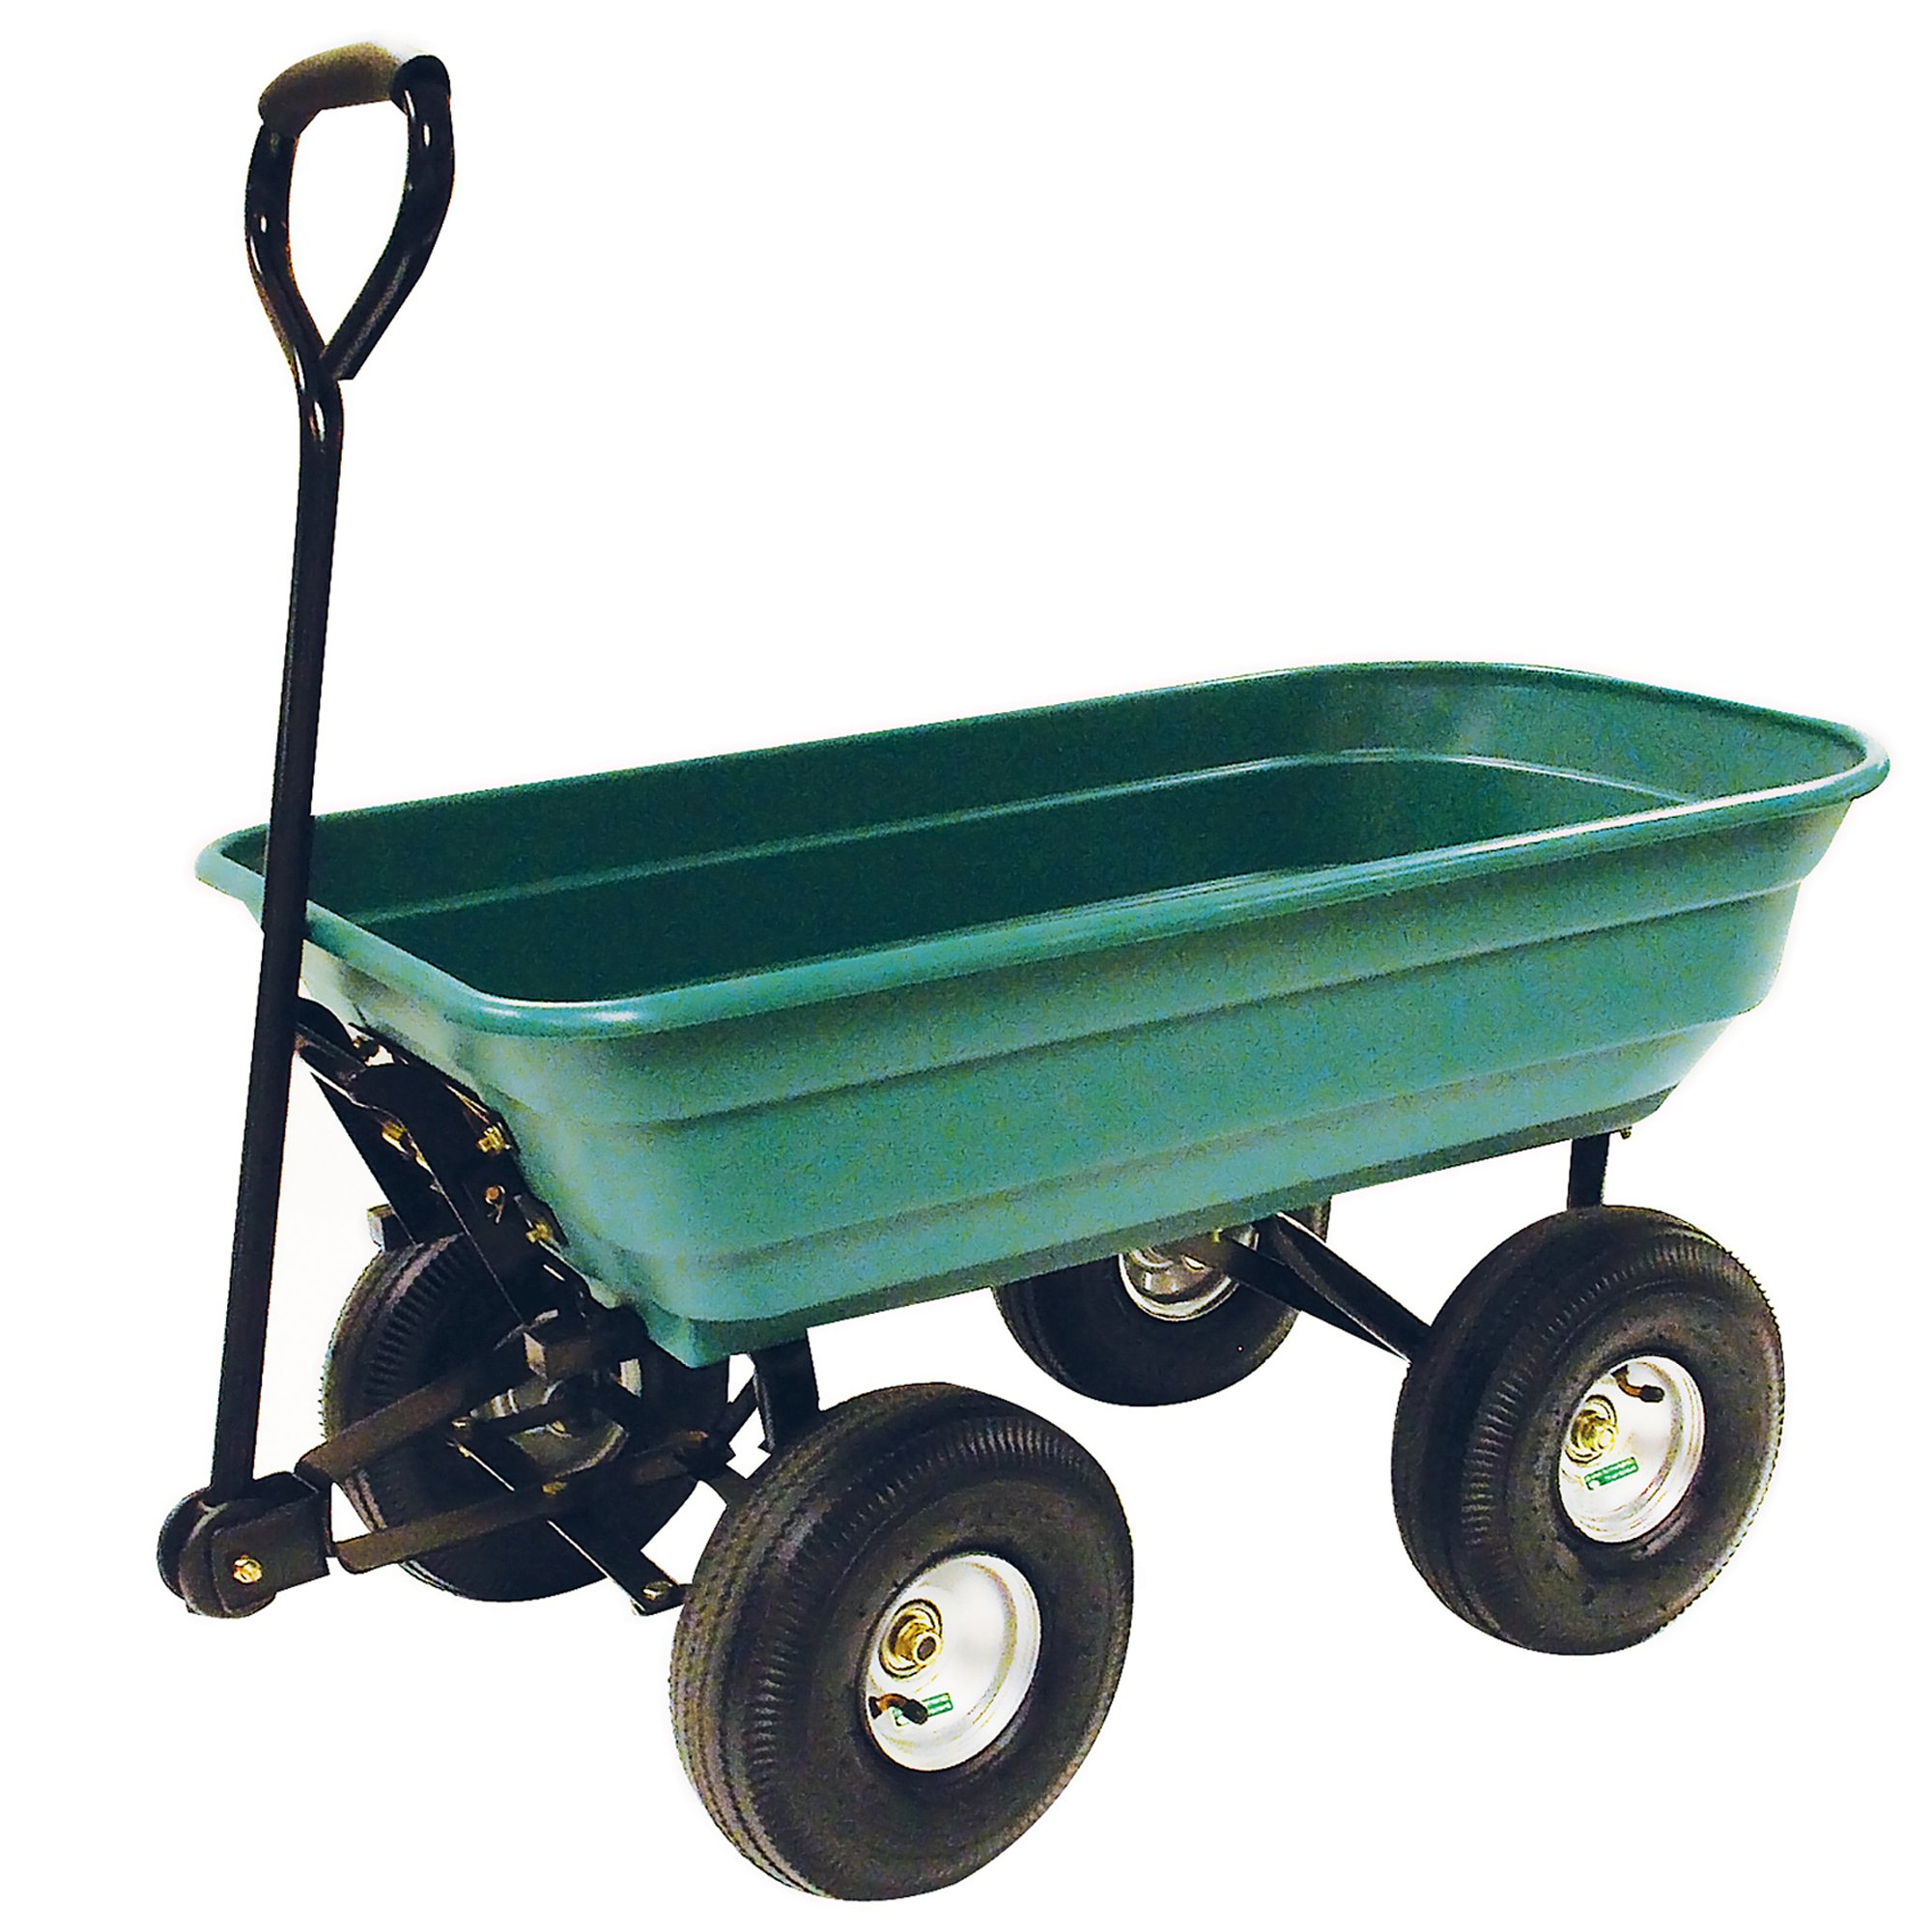 Precision LC2000 Capacity Mighty Garden Yard Cart, 600-Pound by Unknown (Image #3)